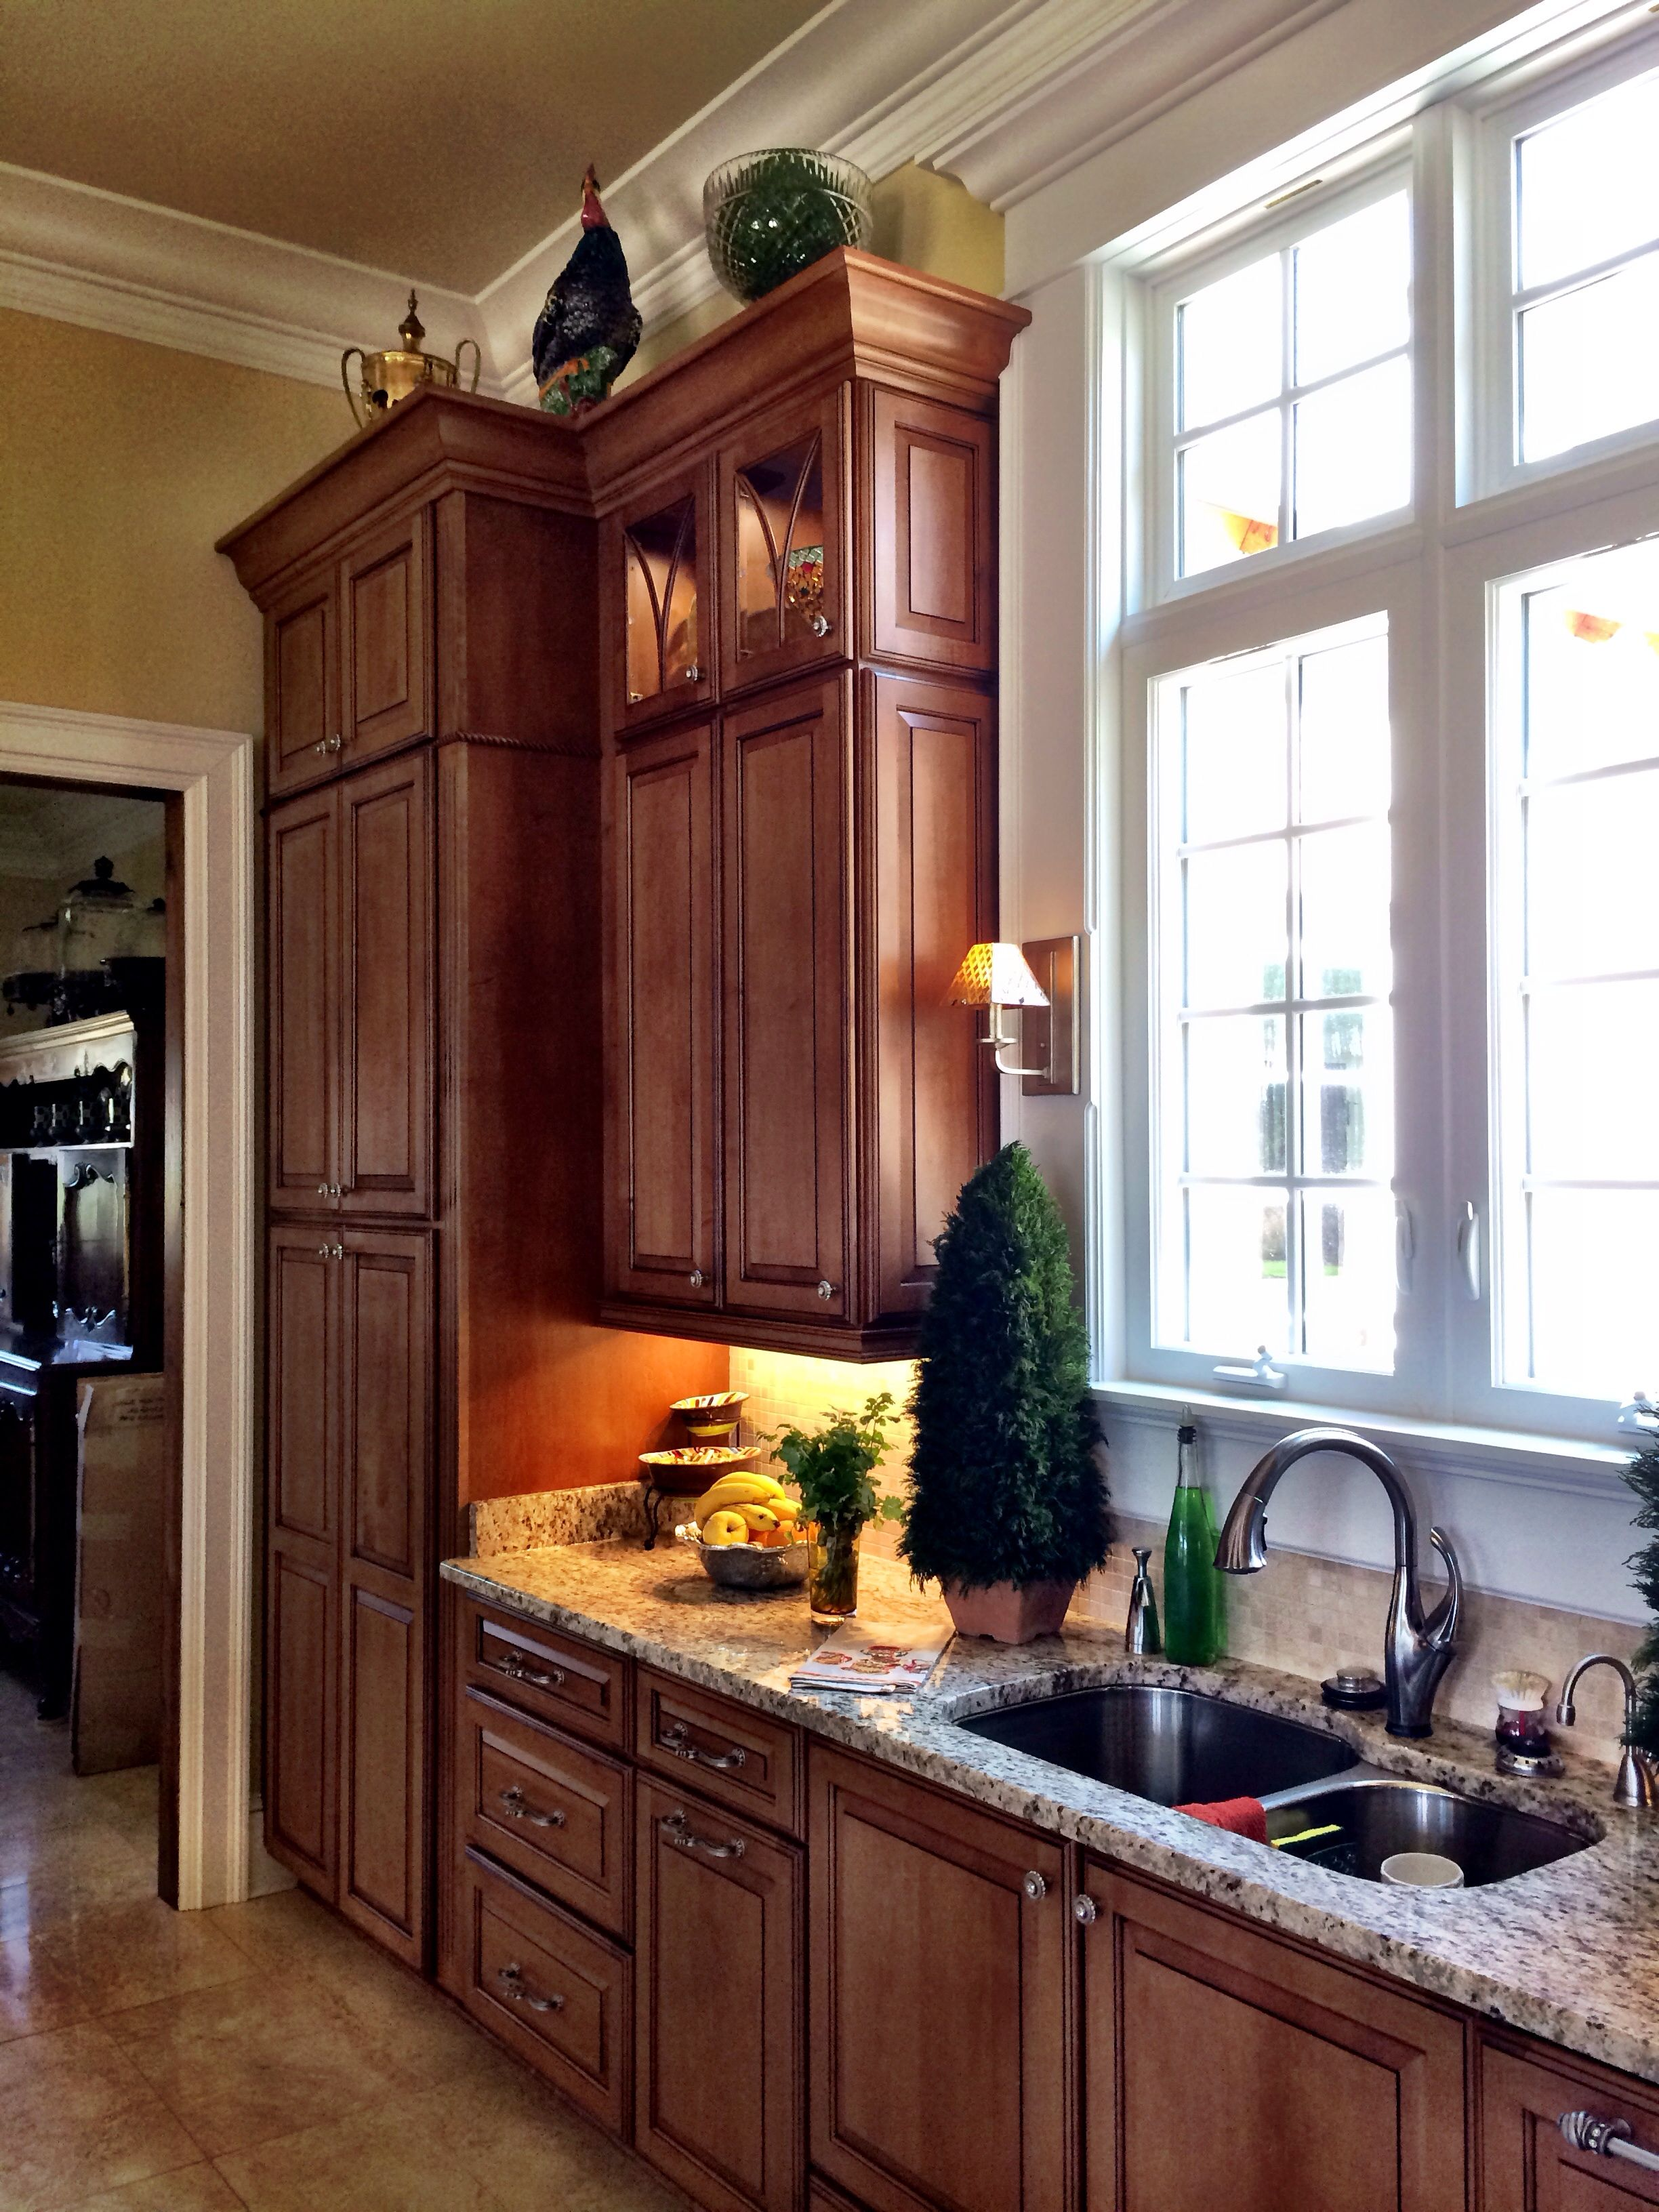 Wall pantry unit and kitchen sink area 12 foot ceilings schuler cabinetry design by scott herrin lowes kitchen designer